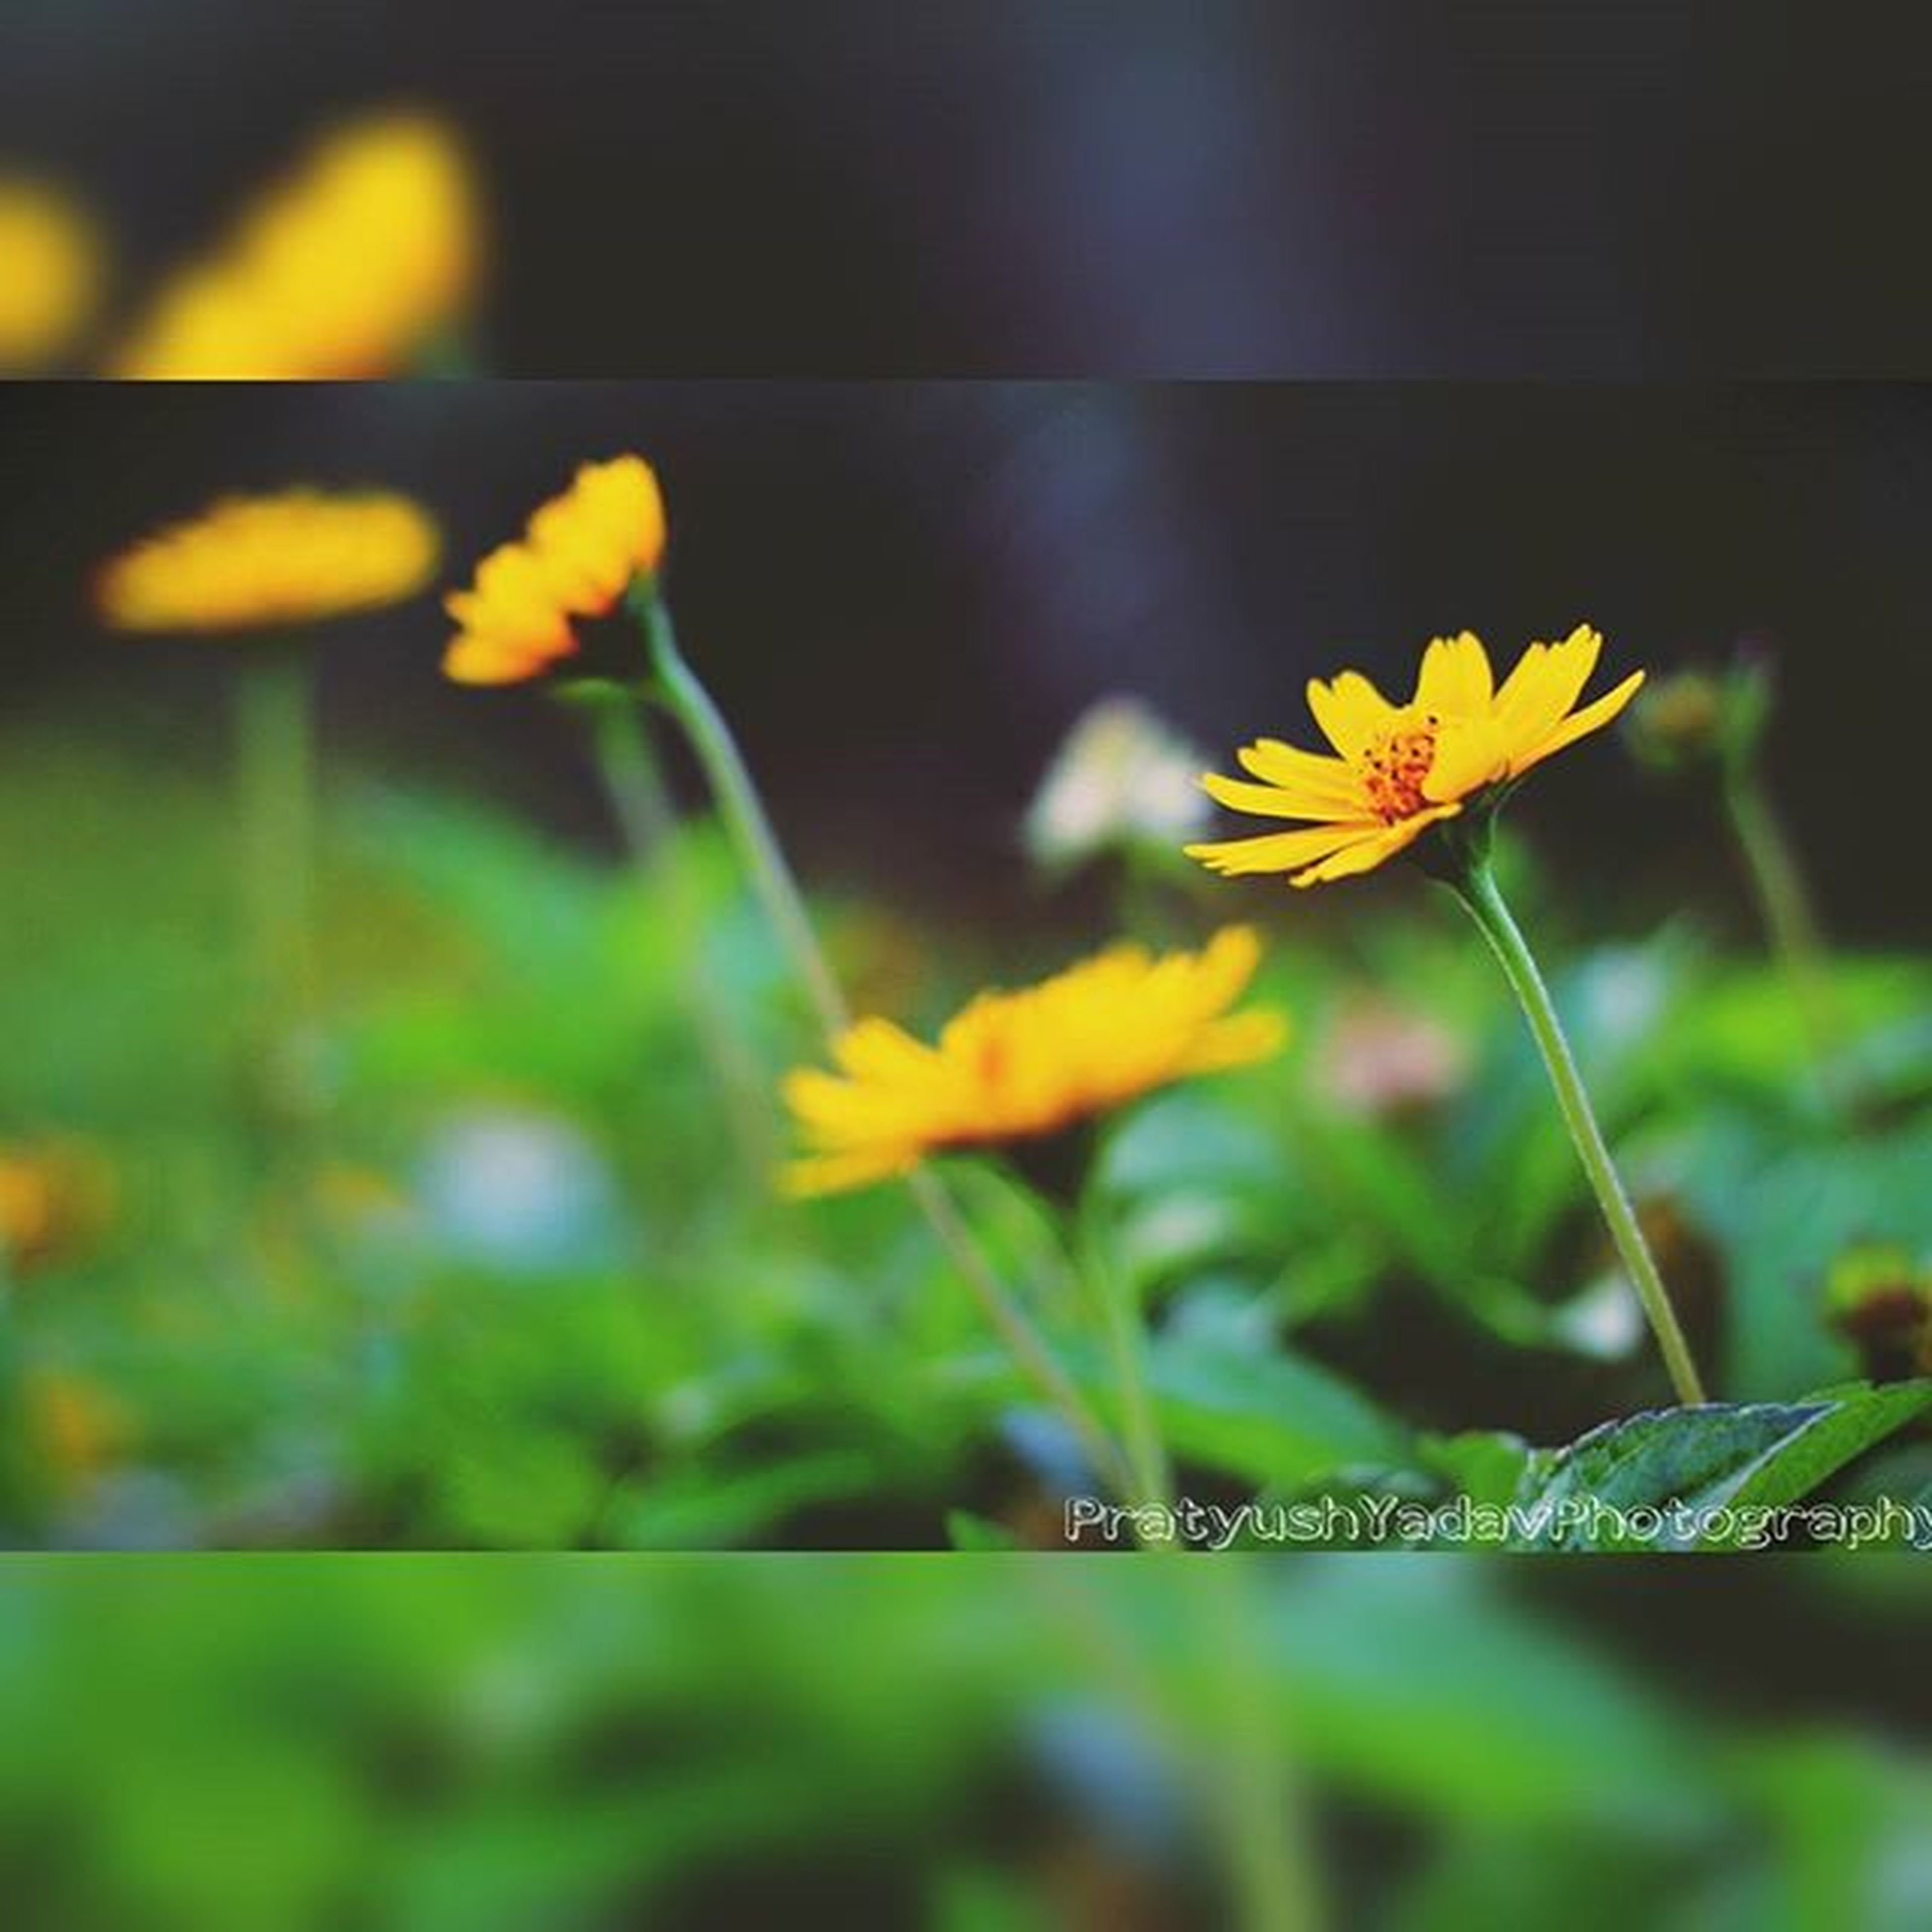 flower, petal, fragility, freshness, yellow, focus on foreground, growth, flower head, close-up, plant, beauty in nature, blooming, stem, nature, selective focus, in bloom, park - man made space, day, outdoors, sunlight